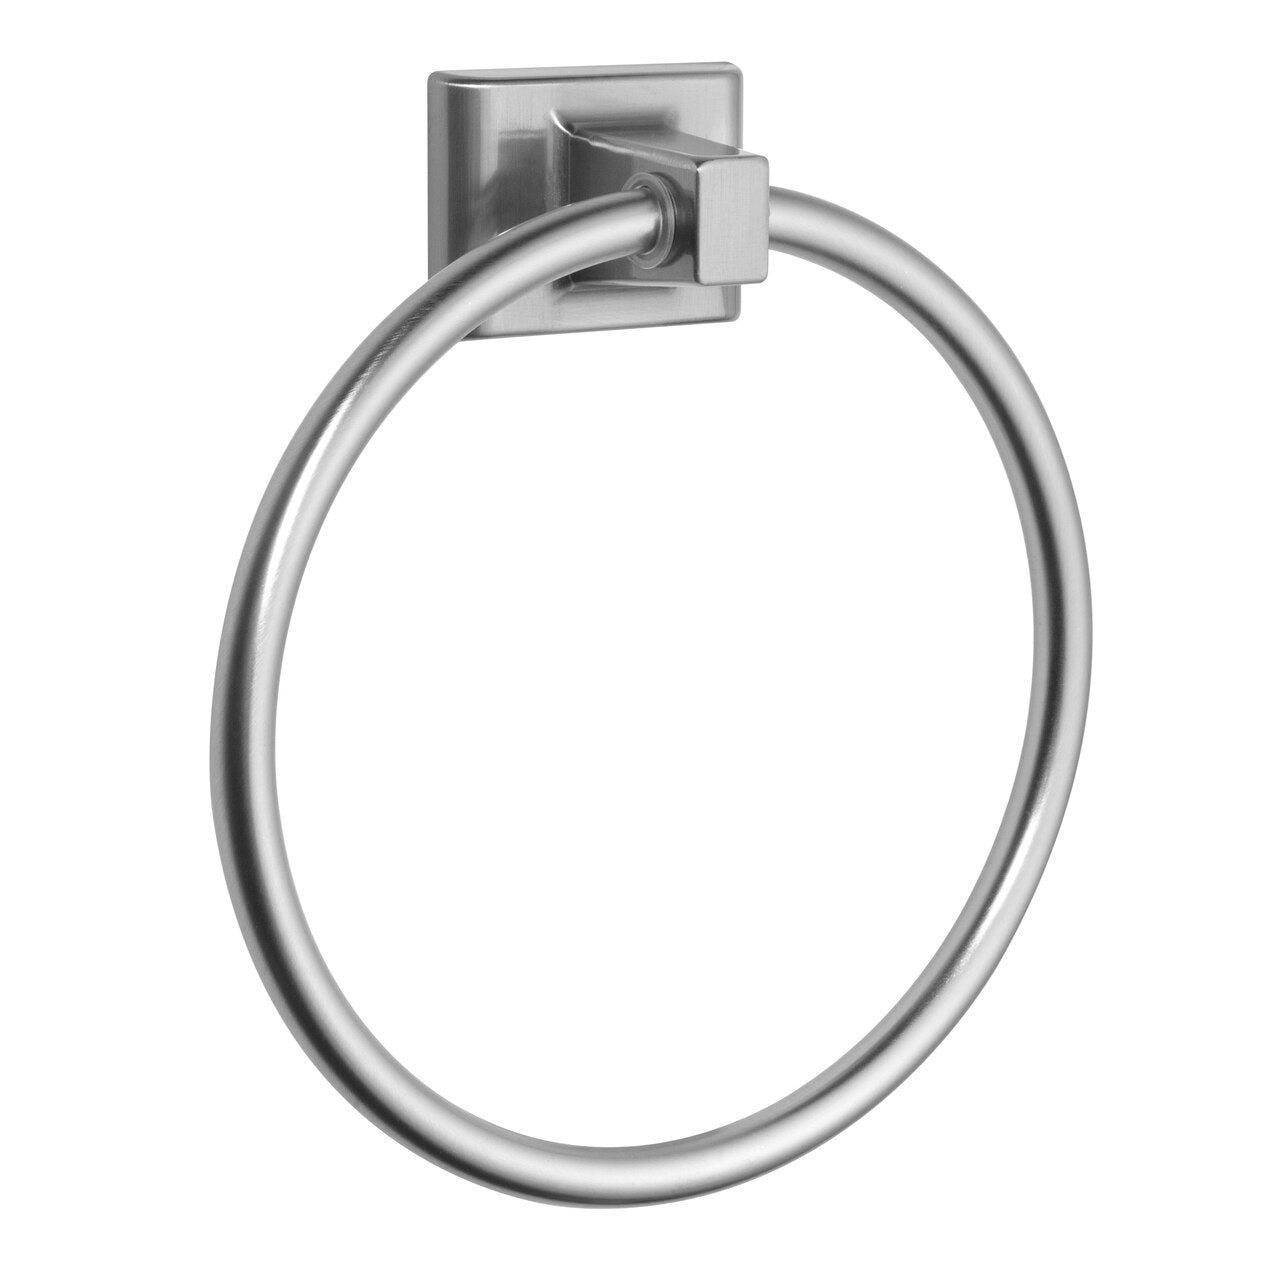 Designers Impressions Eclipse Series Satin Nickel Towel Ring